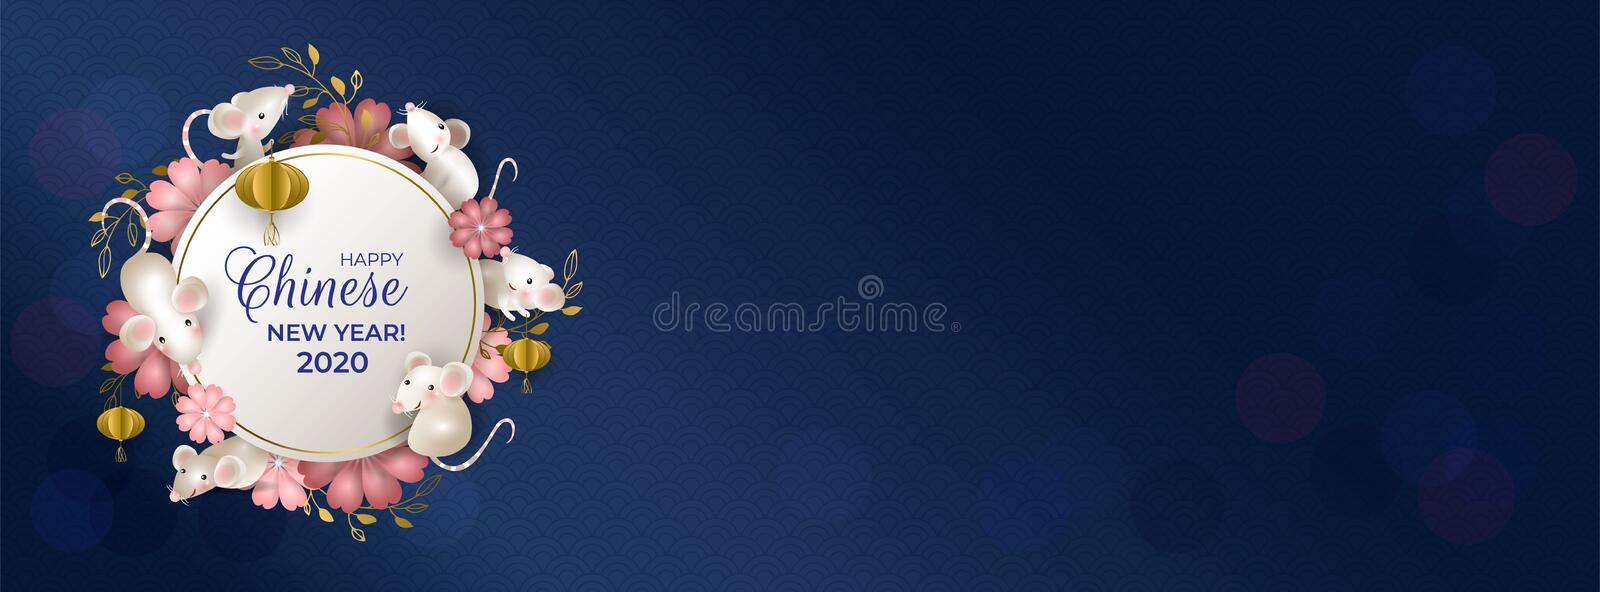 Happy Chinese New Year 2020. Six rats on white round signboard. White mouses, golden lanterns, pink flowers on blue background. stock illustration